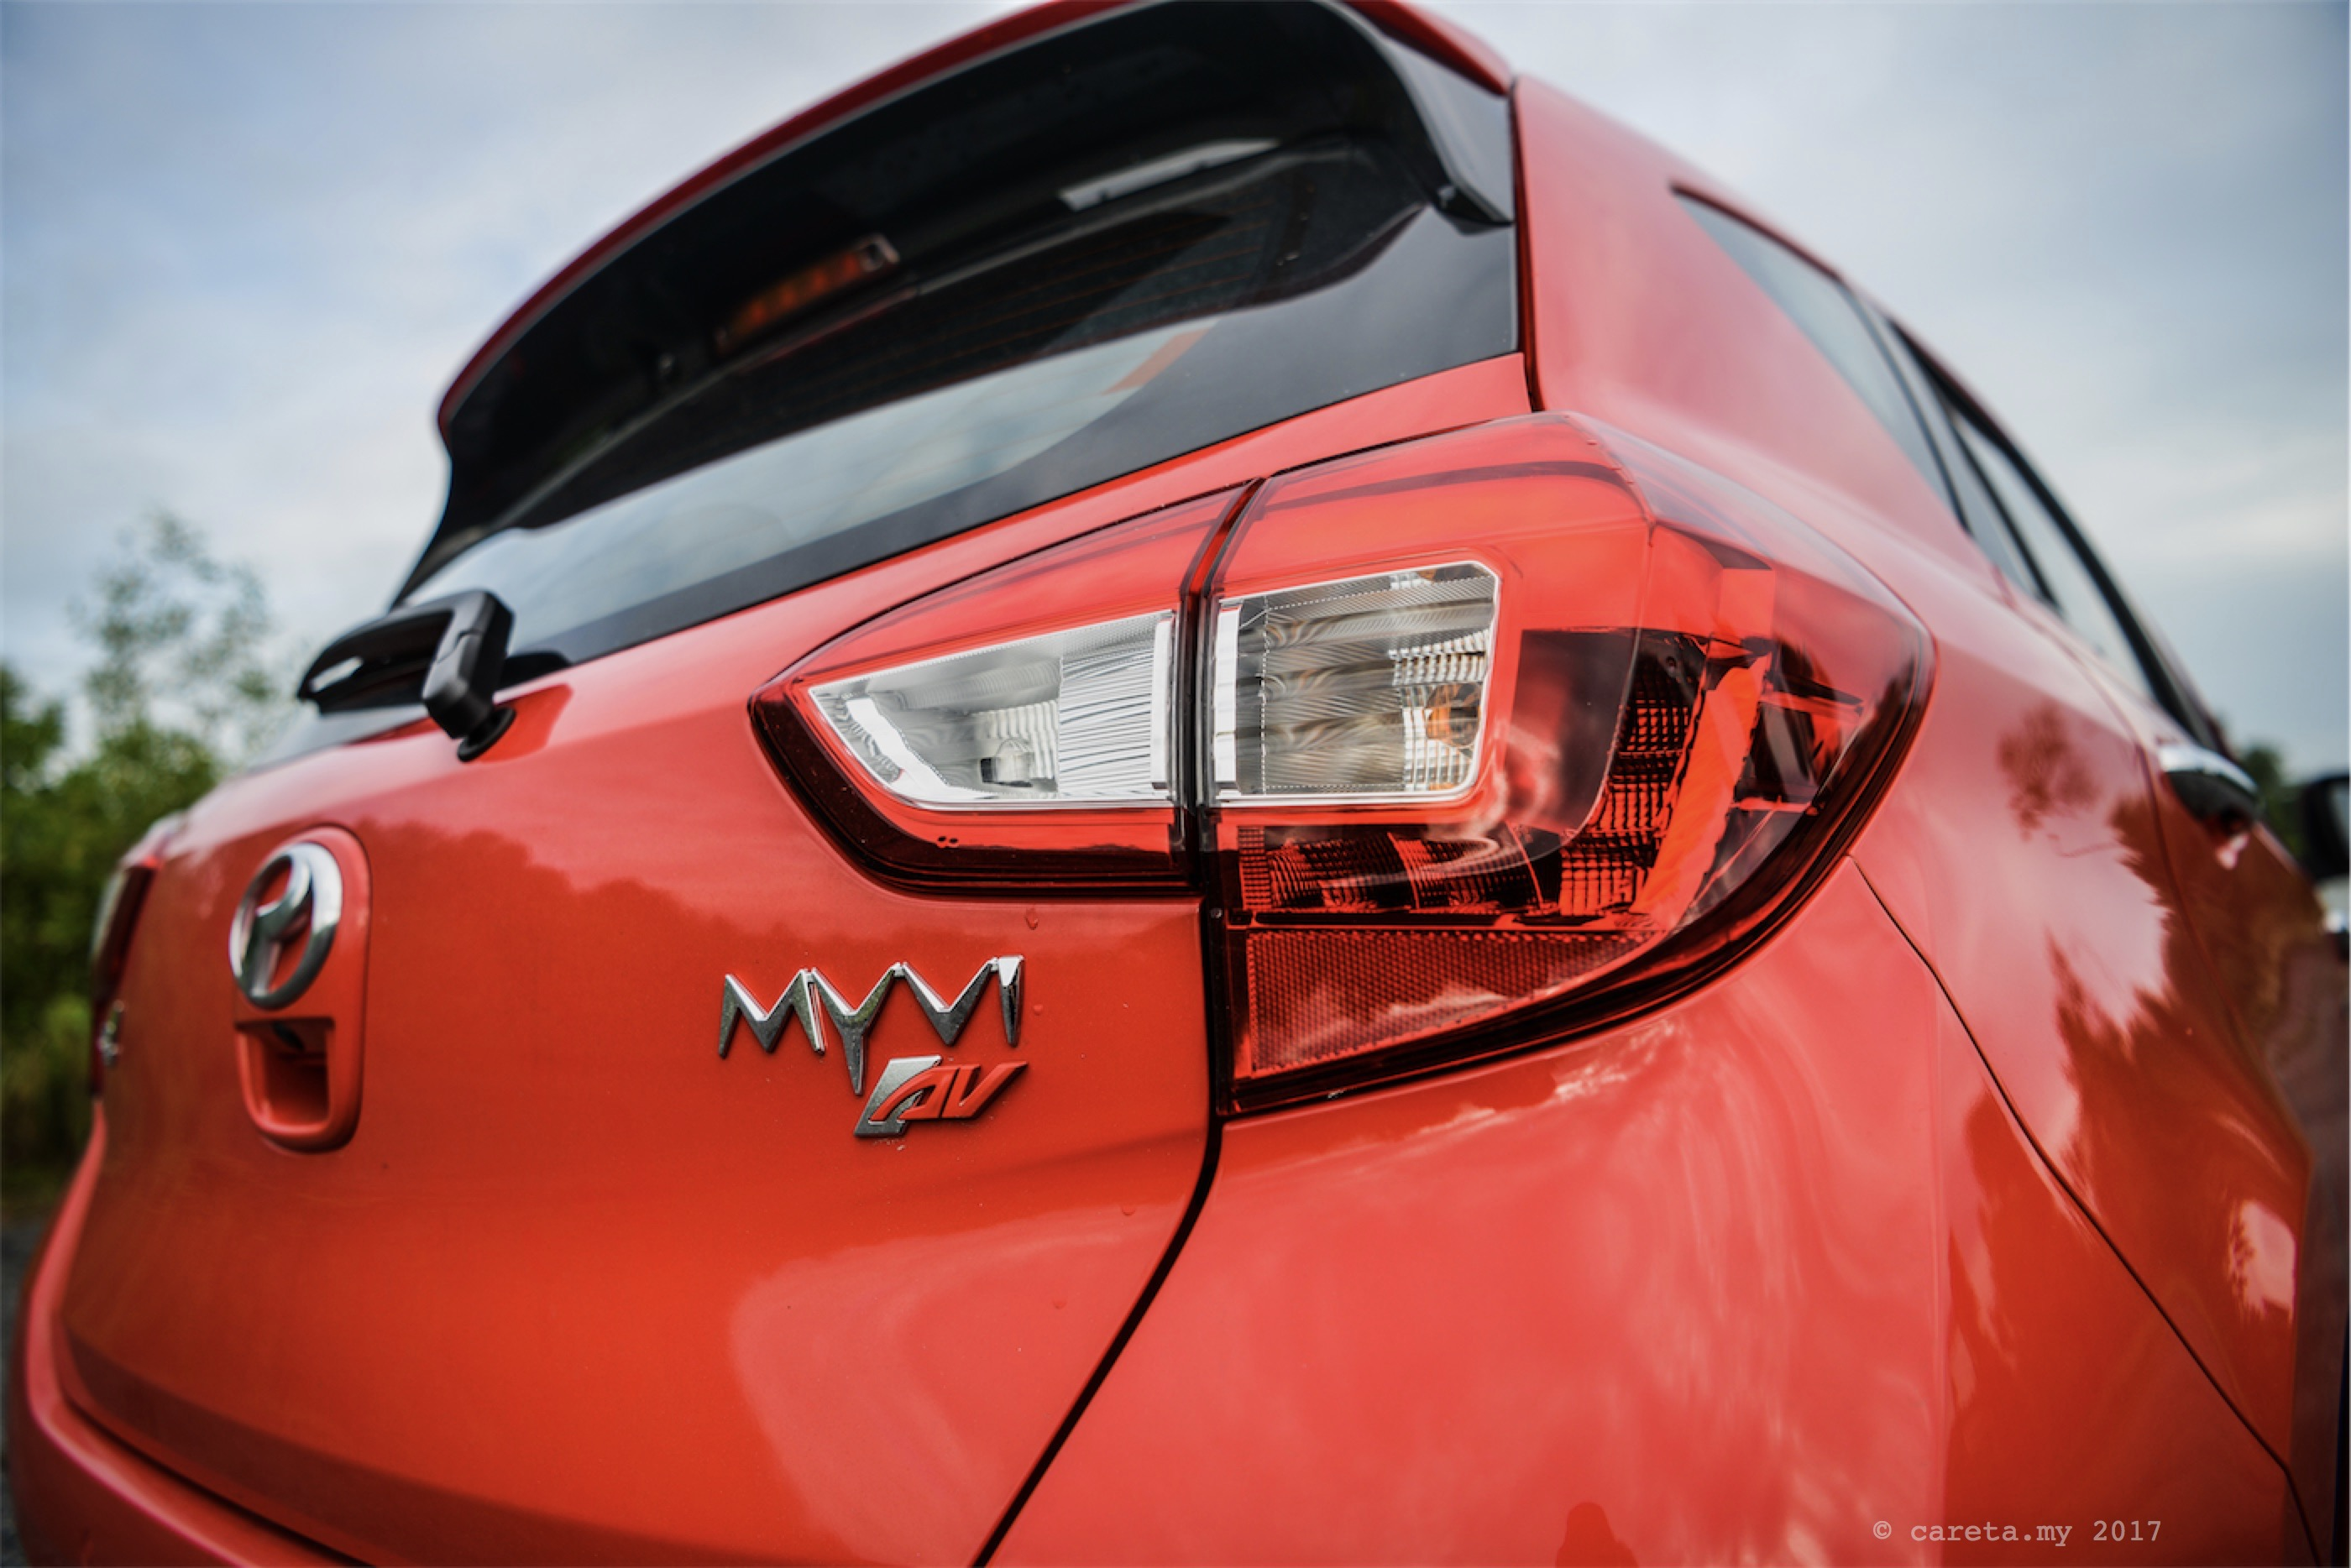 Myvi AV badge